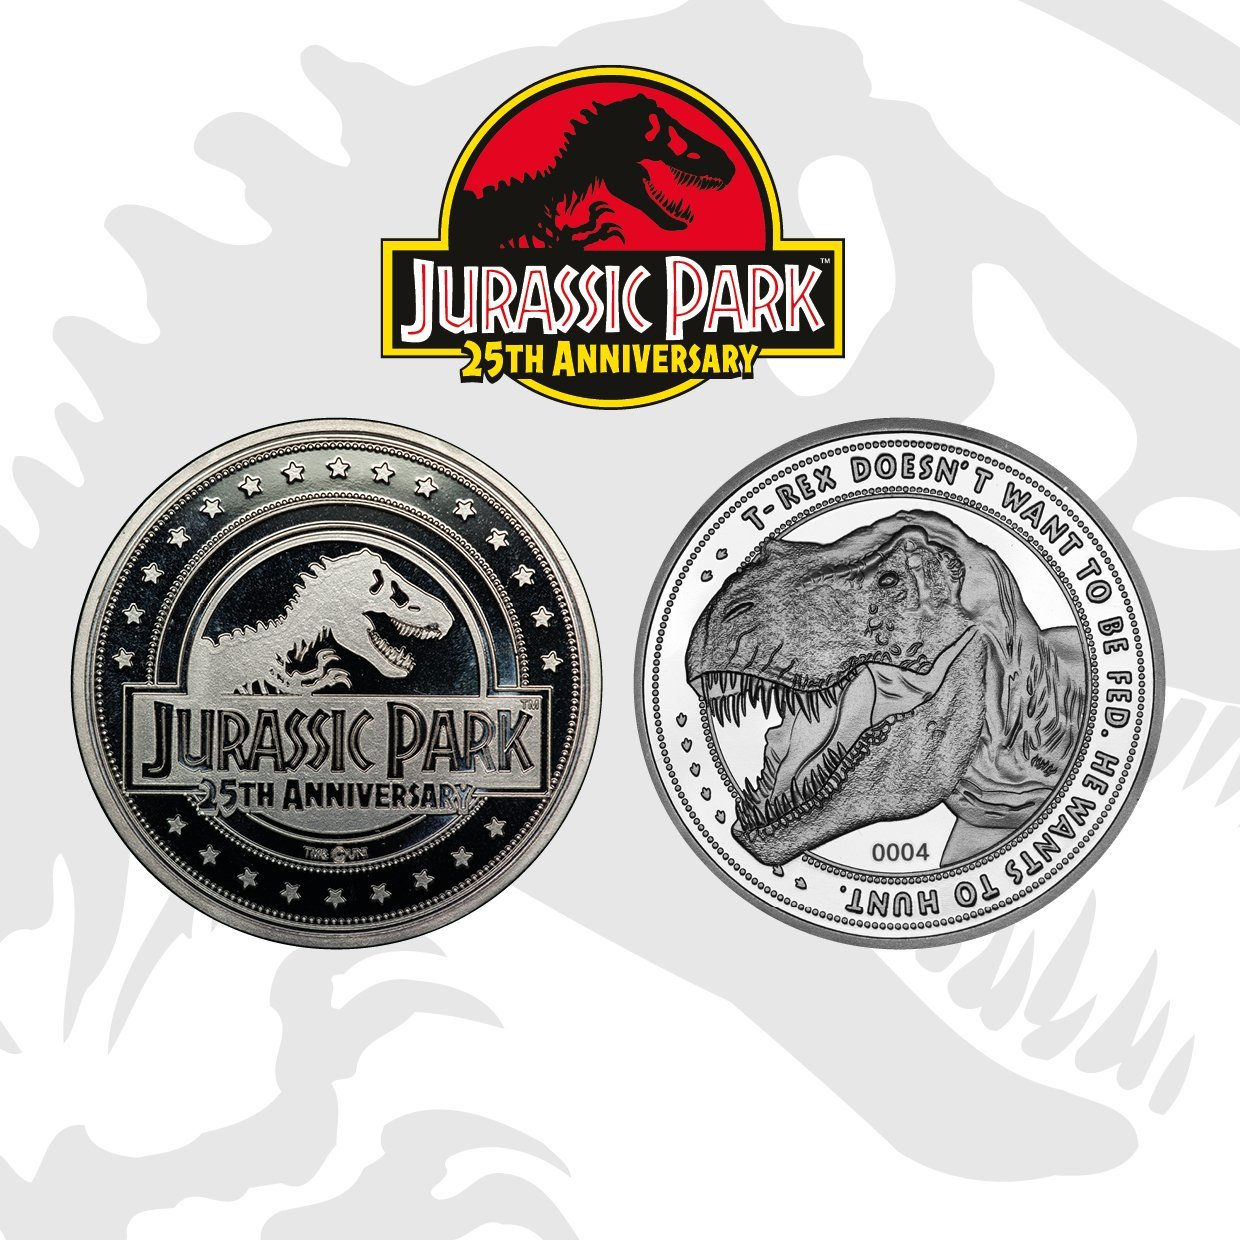 Jurassic Park: Collectible Coin - 25th Anniversary (Silver Edition) image